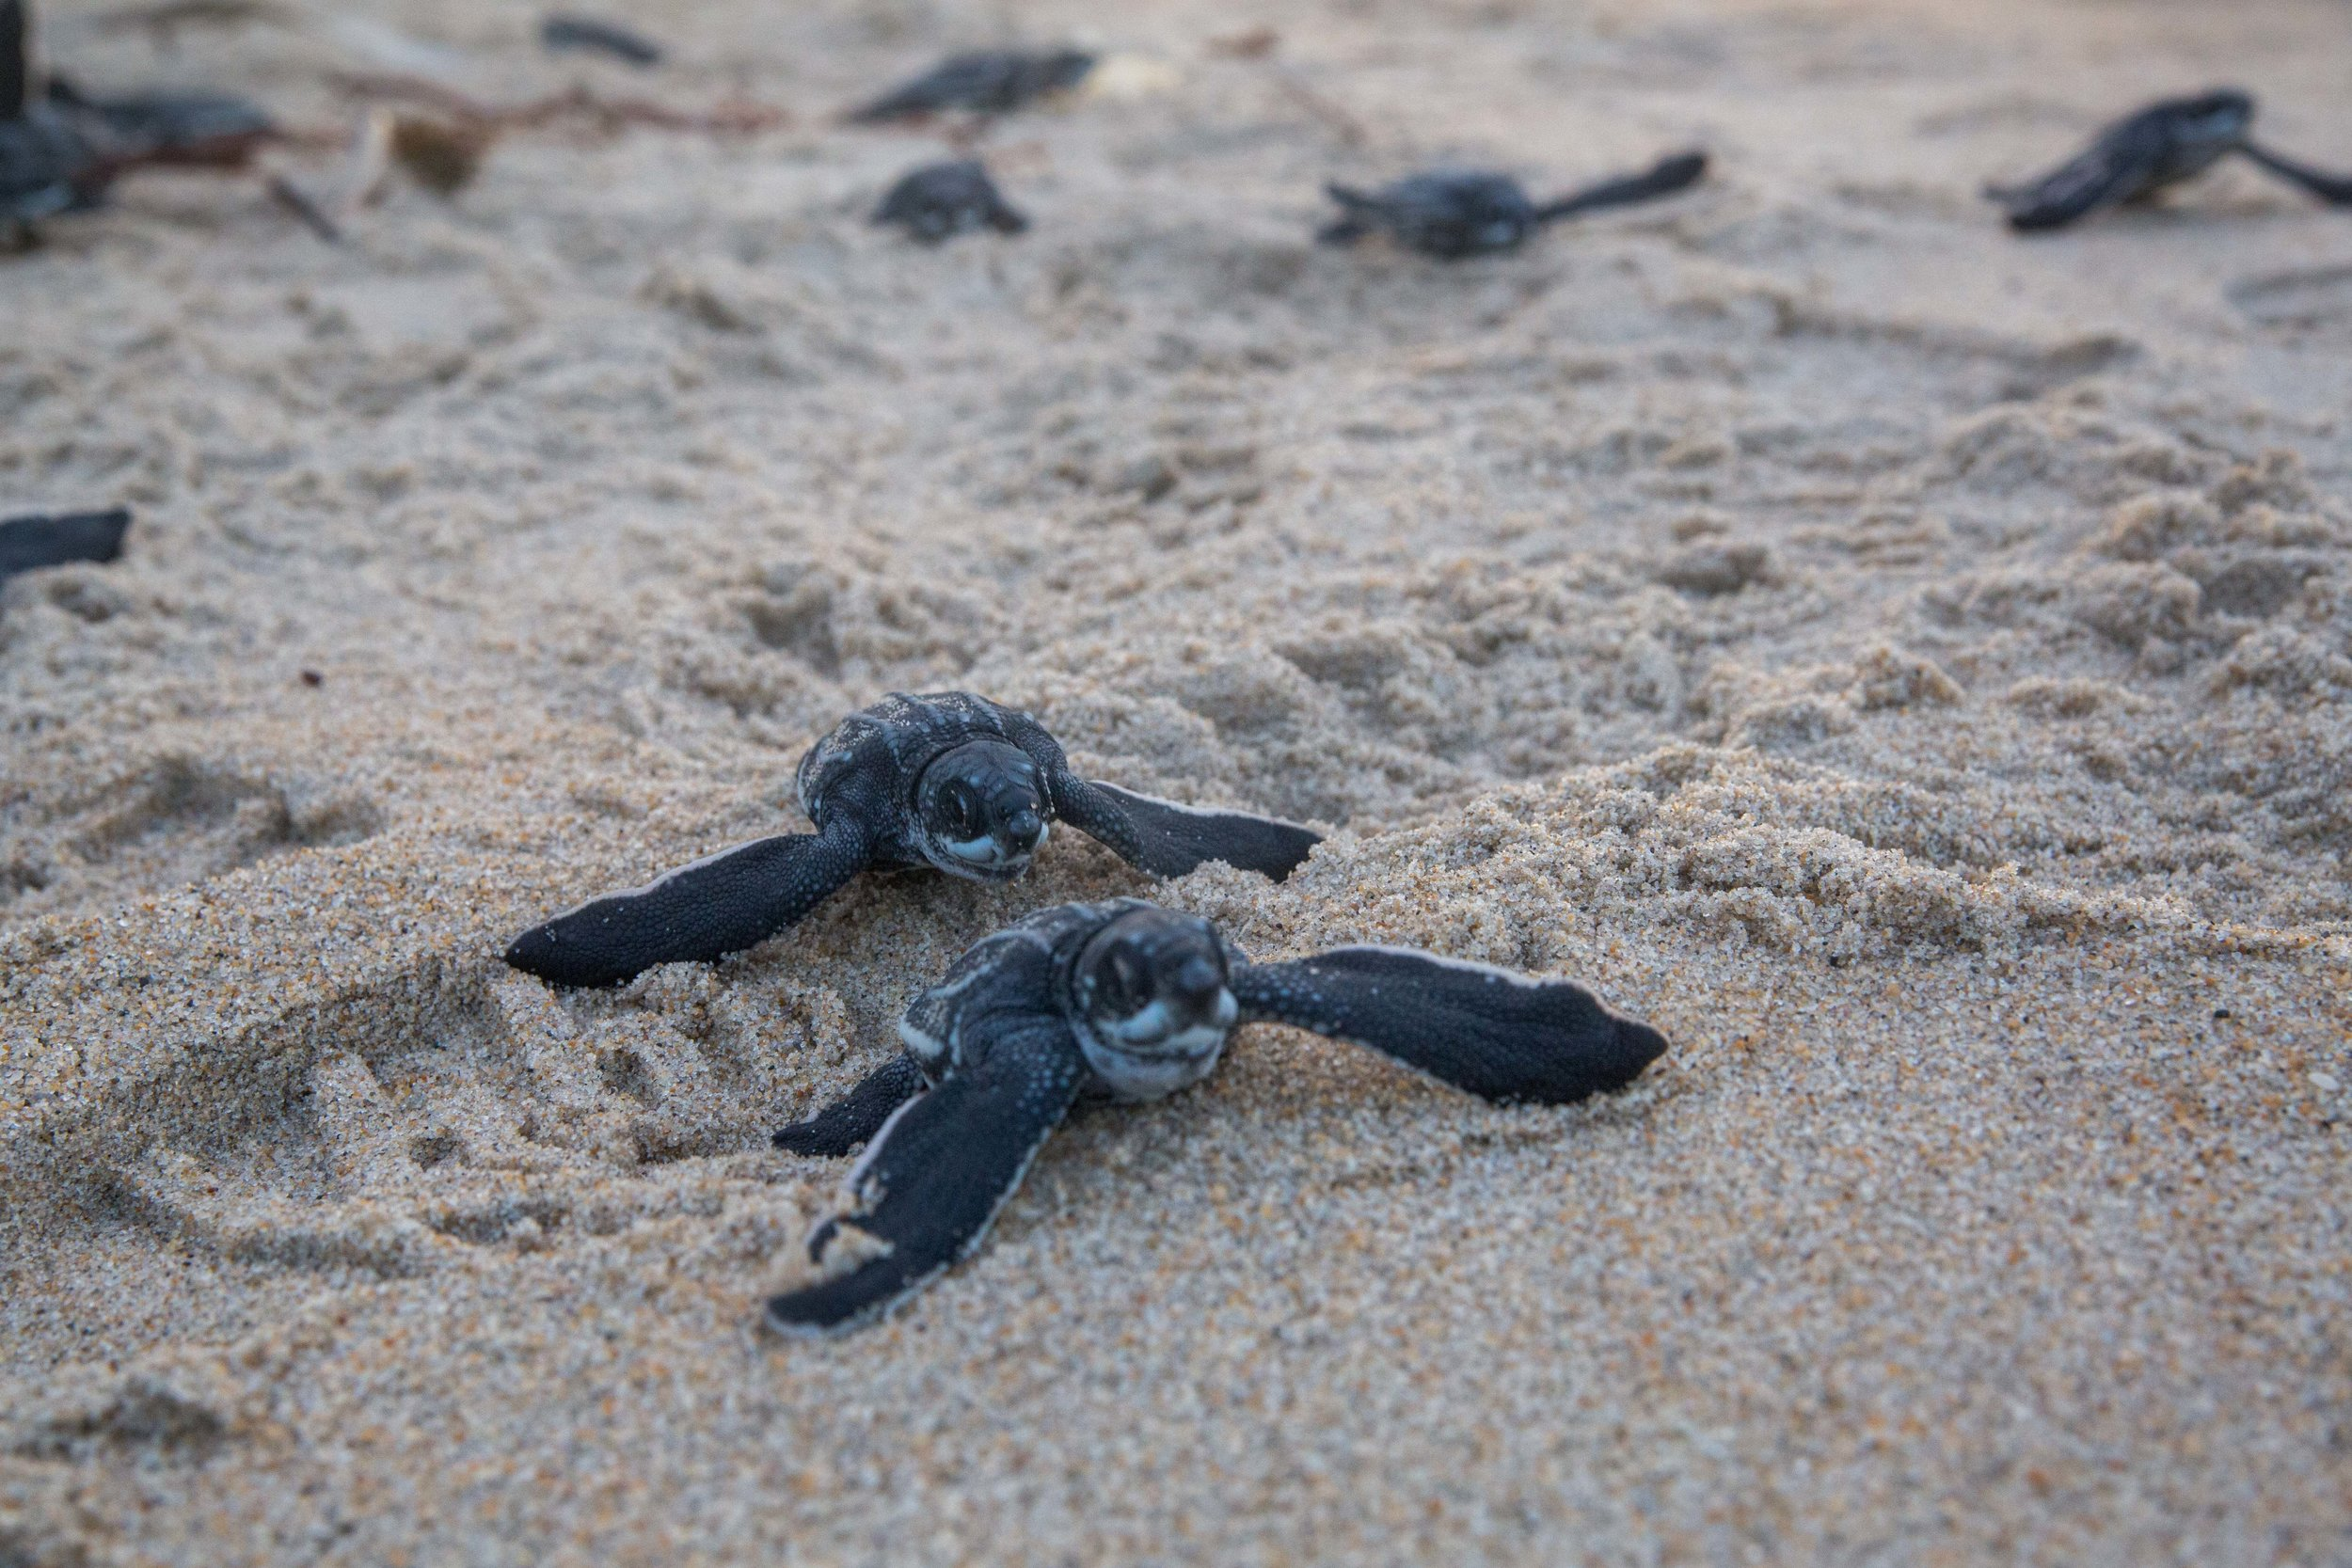 Turtles found during conservation work on our most recent Trinidad TEAM adventure.